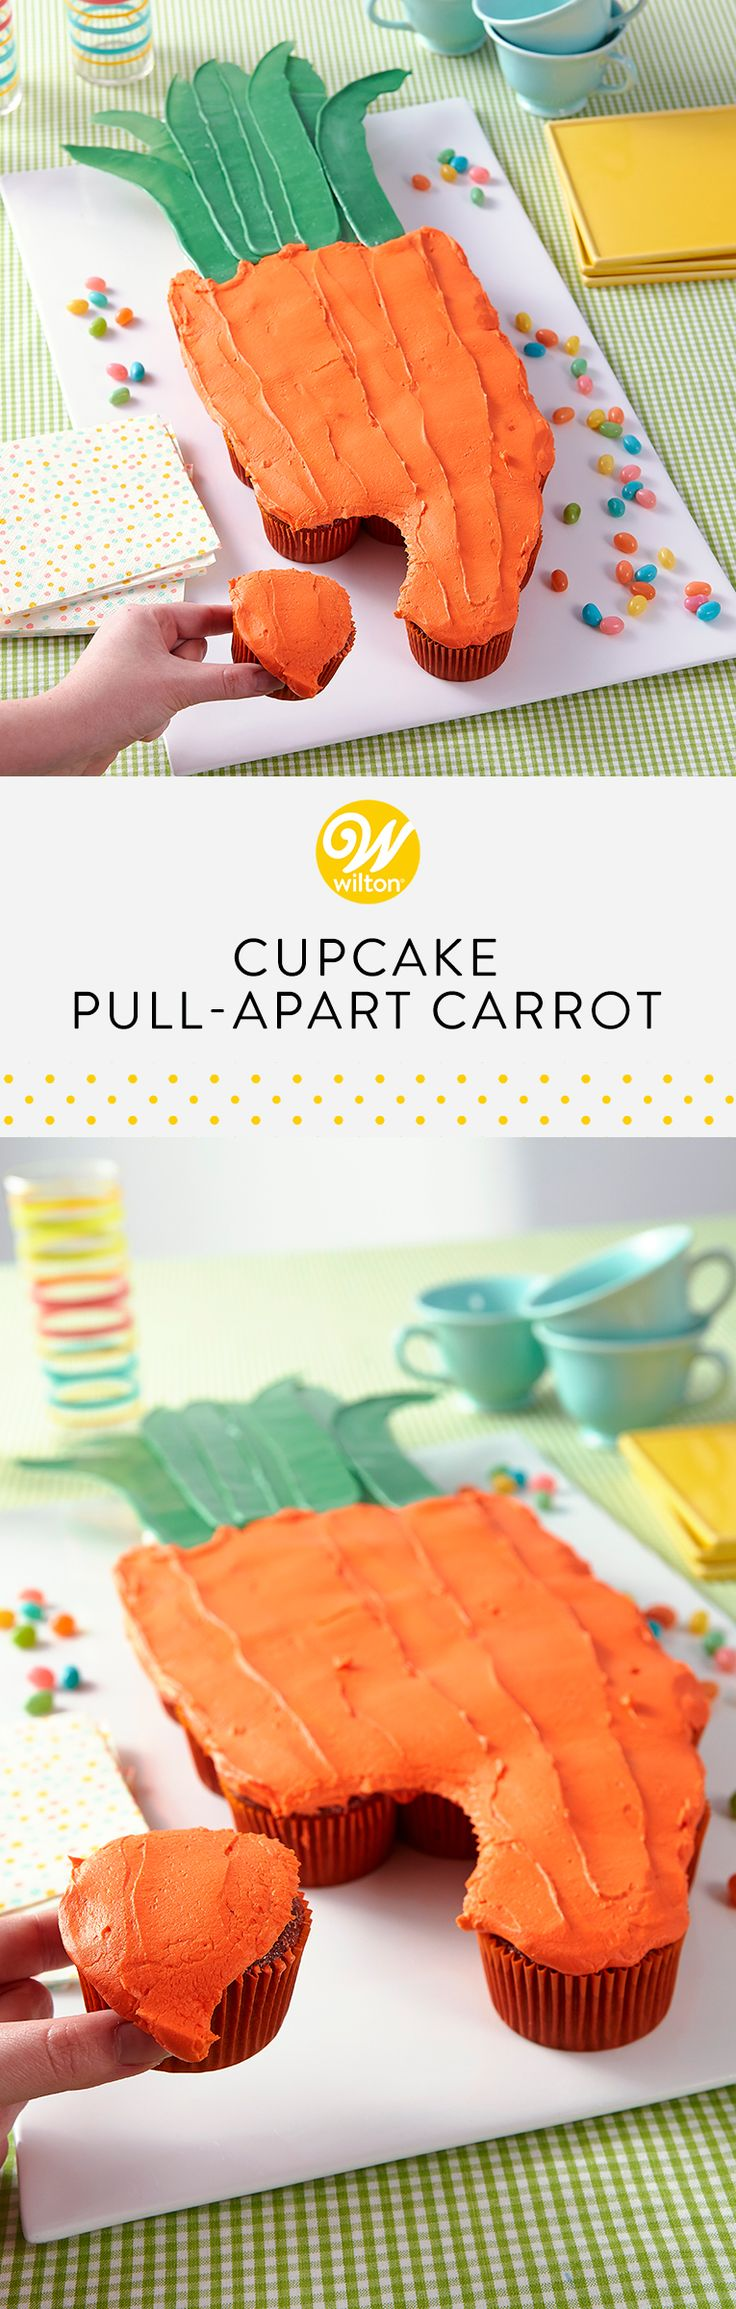 It may look like a cake, but this giant carrot shape is made up of individual cupcakes. Use Candy Melts® candy to make the leaves that add a realistic finishing touch! This pull-apart carrot cupcake cake is the perfect centerpiece for your Easter sweet table, plus it is easy to serve--guests just grab a cupcake and go! #wiltoncakes #cakes #cakeideas #easter #eastercakes #carrotcake #cupcakes #carrotcakecupcakes #pullapart #pullapartcake #easterideas #easterdesserts #buttercream #inspiration